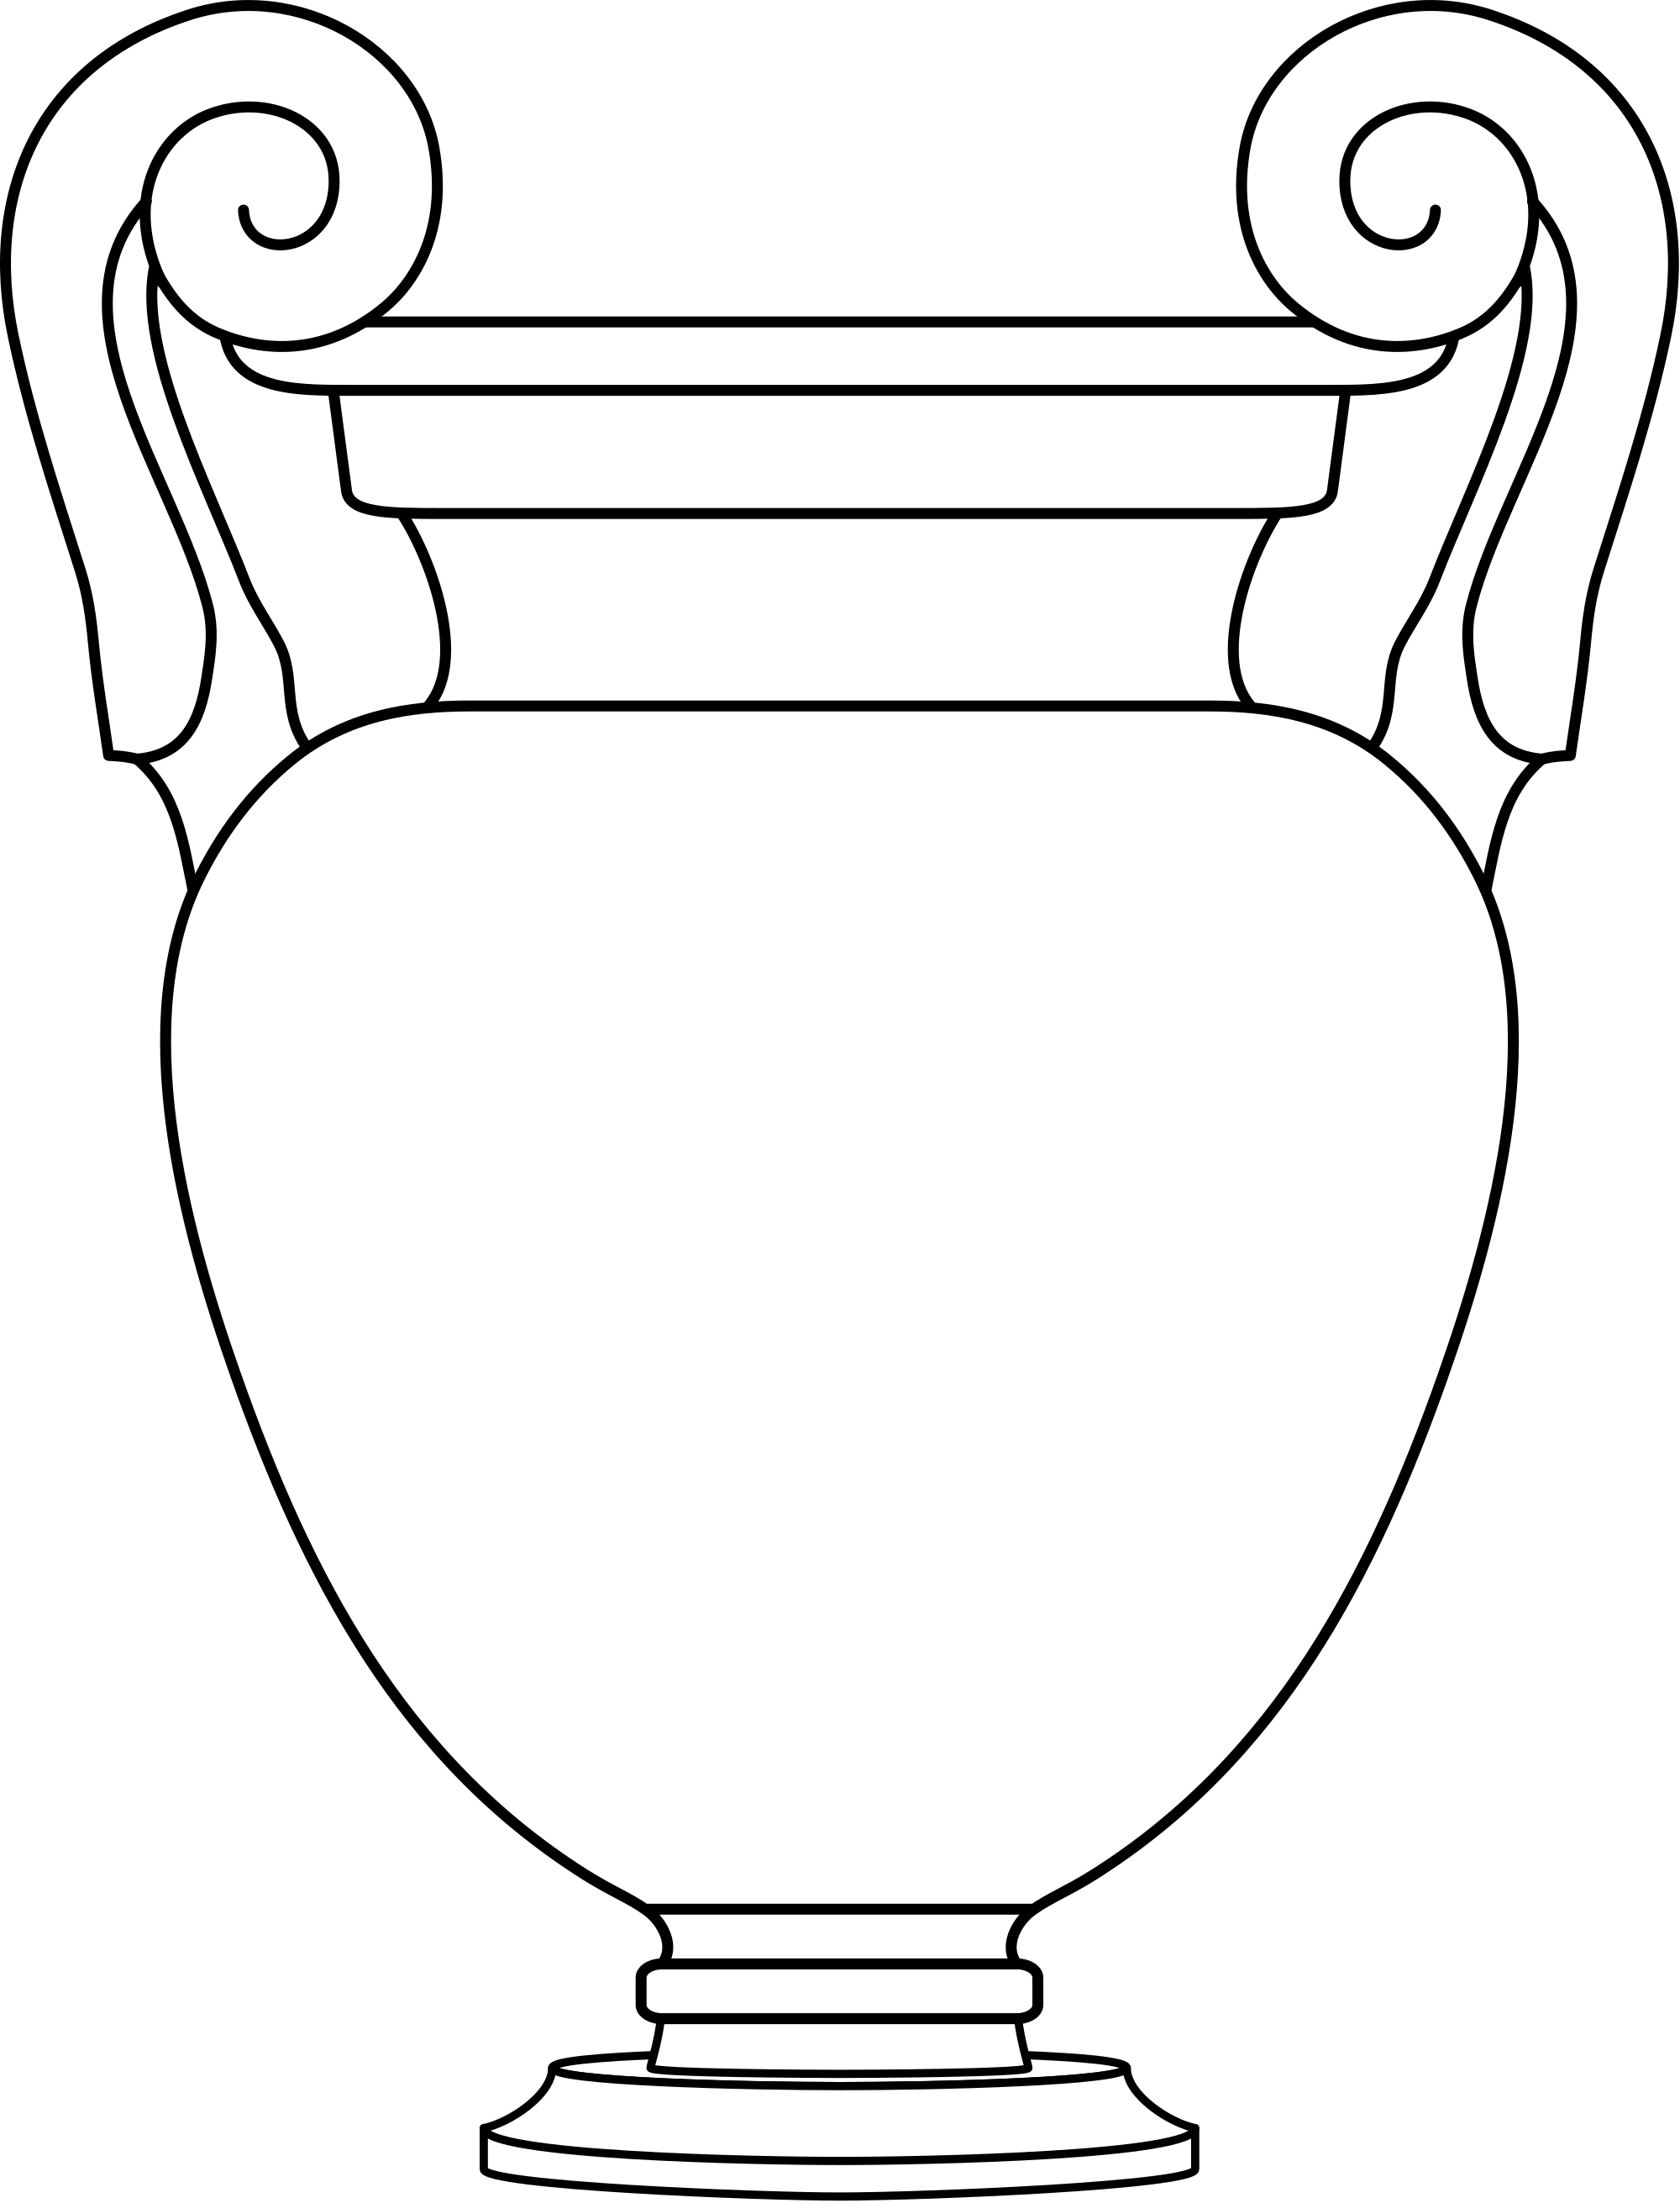 Attic drawing. File volute kraters white